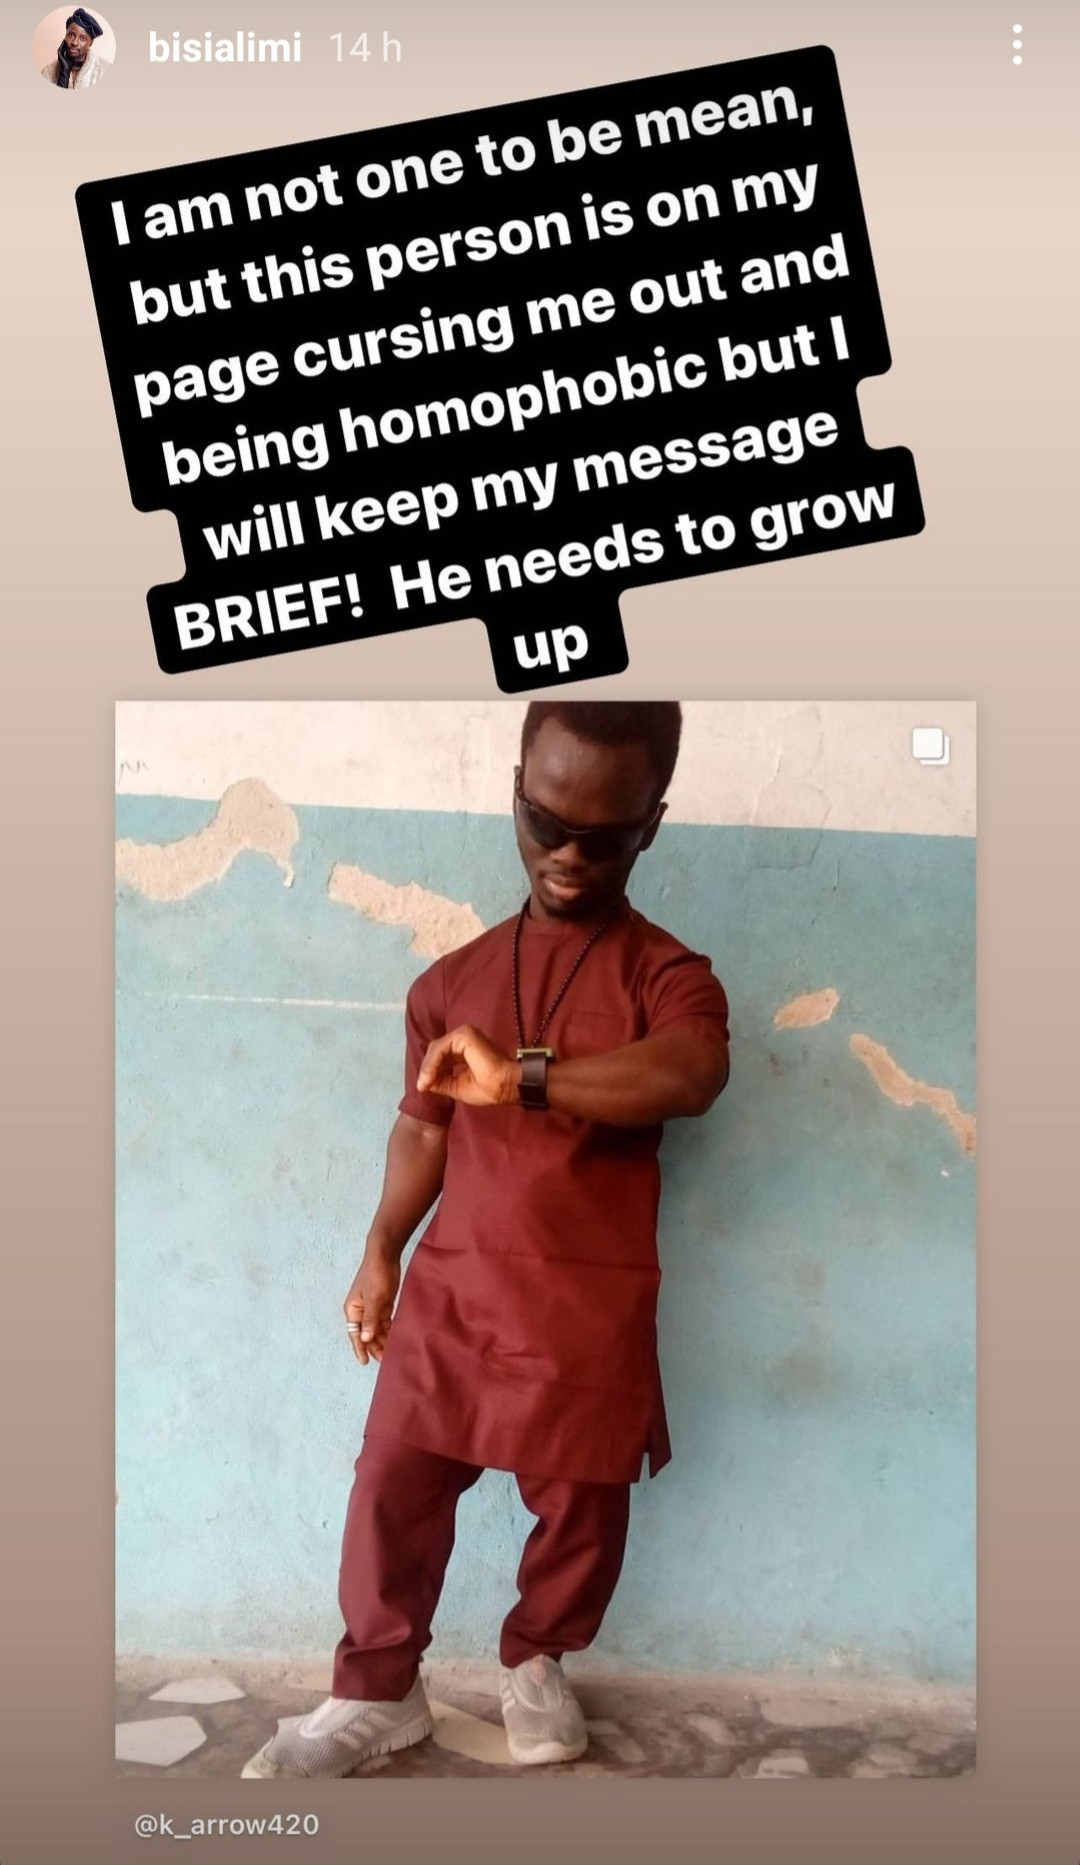 Bisi Alimi slams short-statured man who shamed him for his sexuality